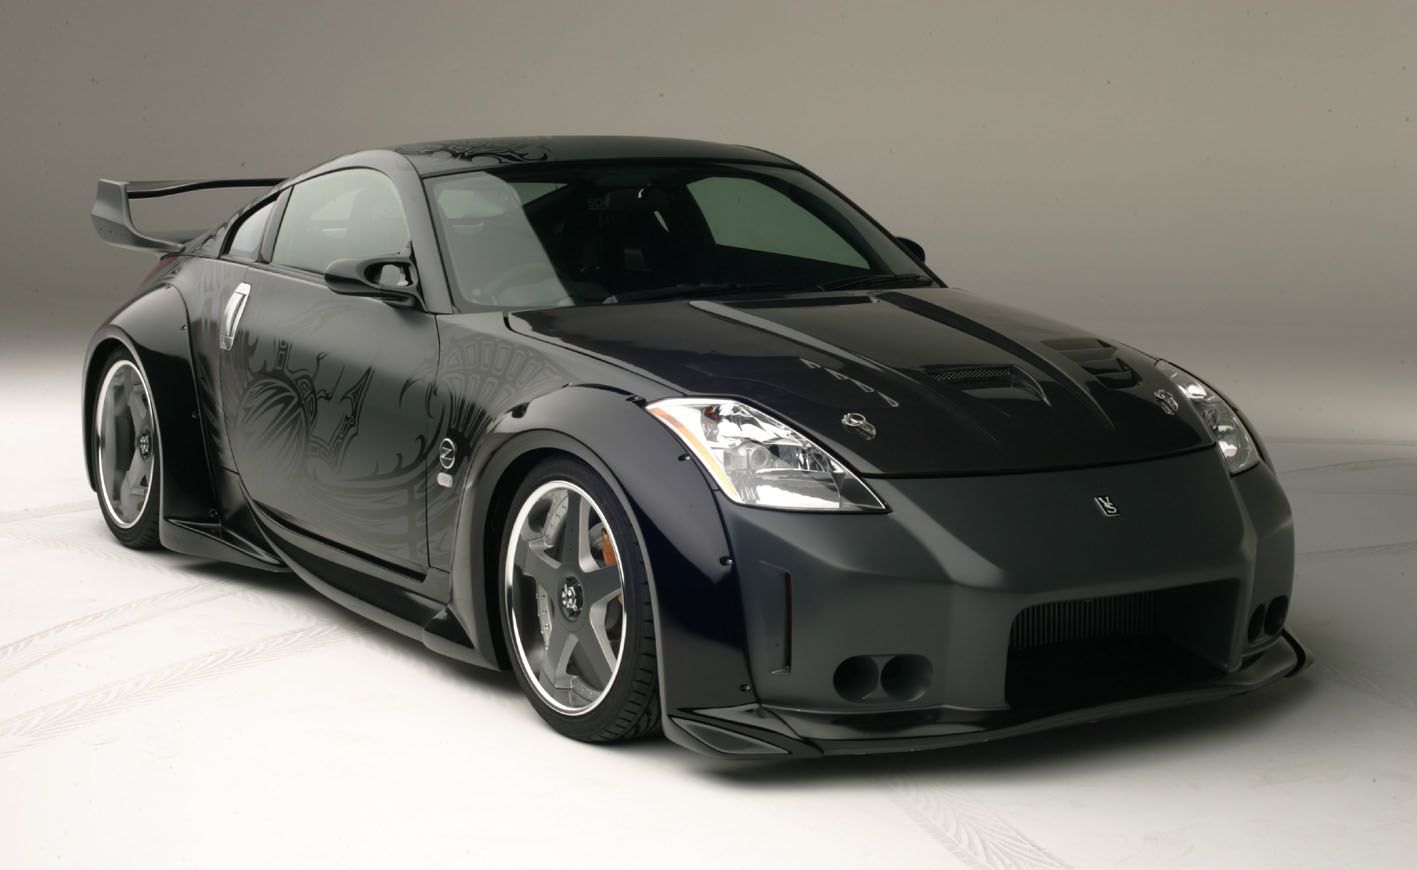 350z take a look at our globally recognized custom cars